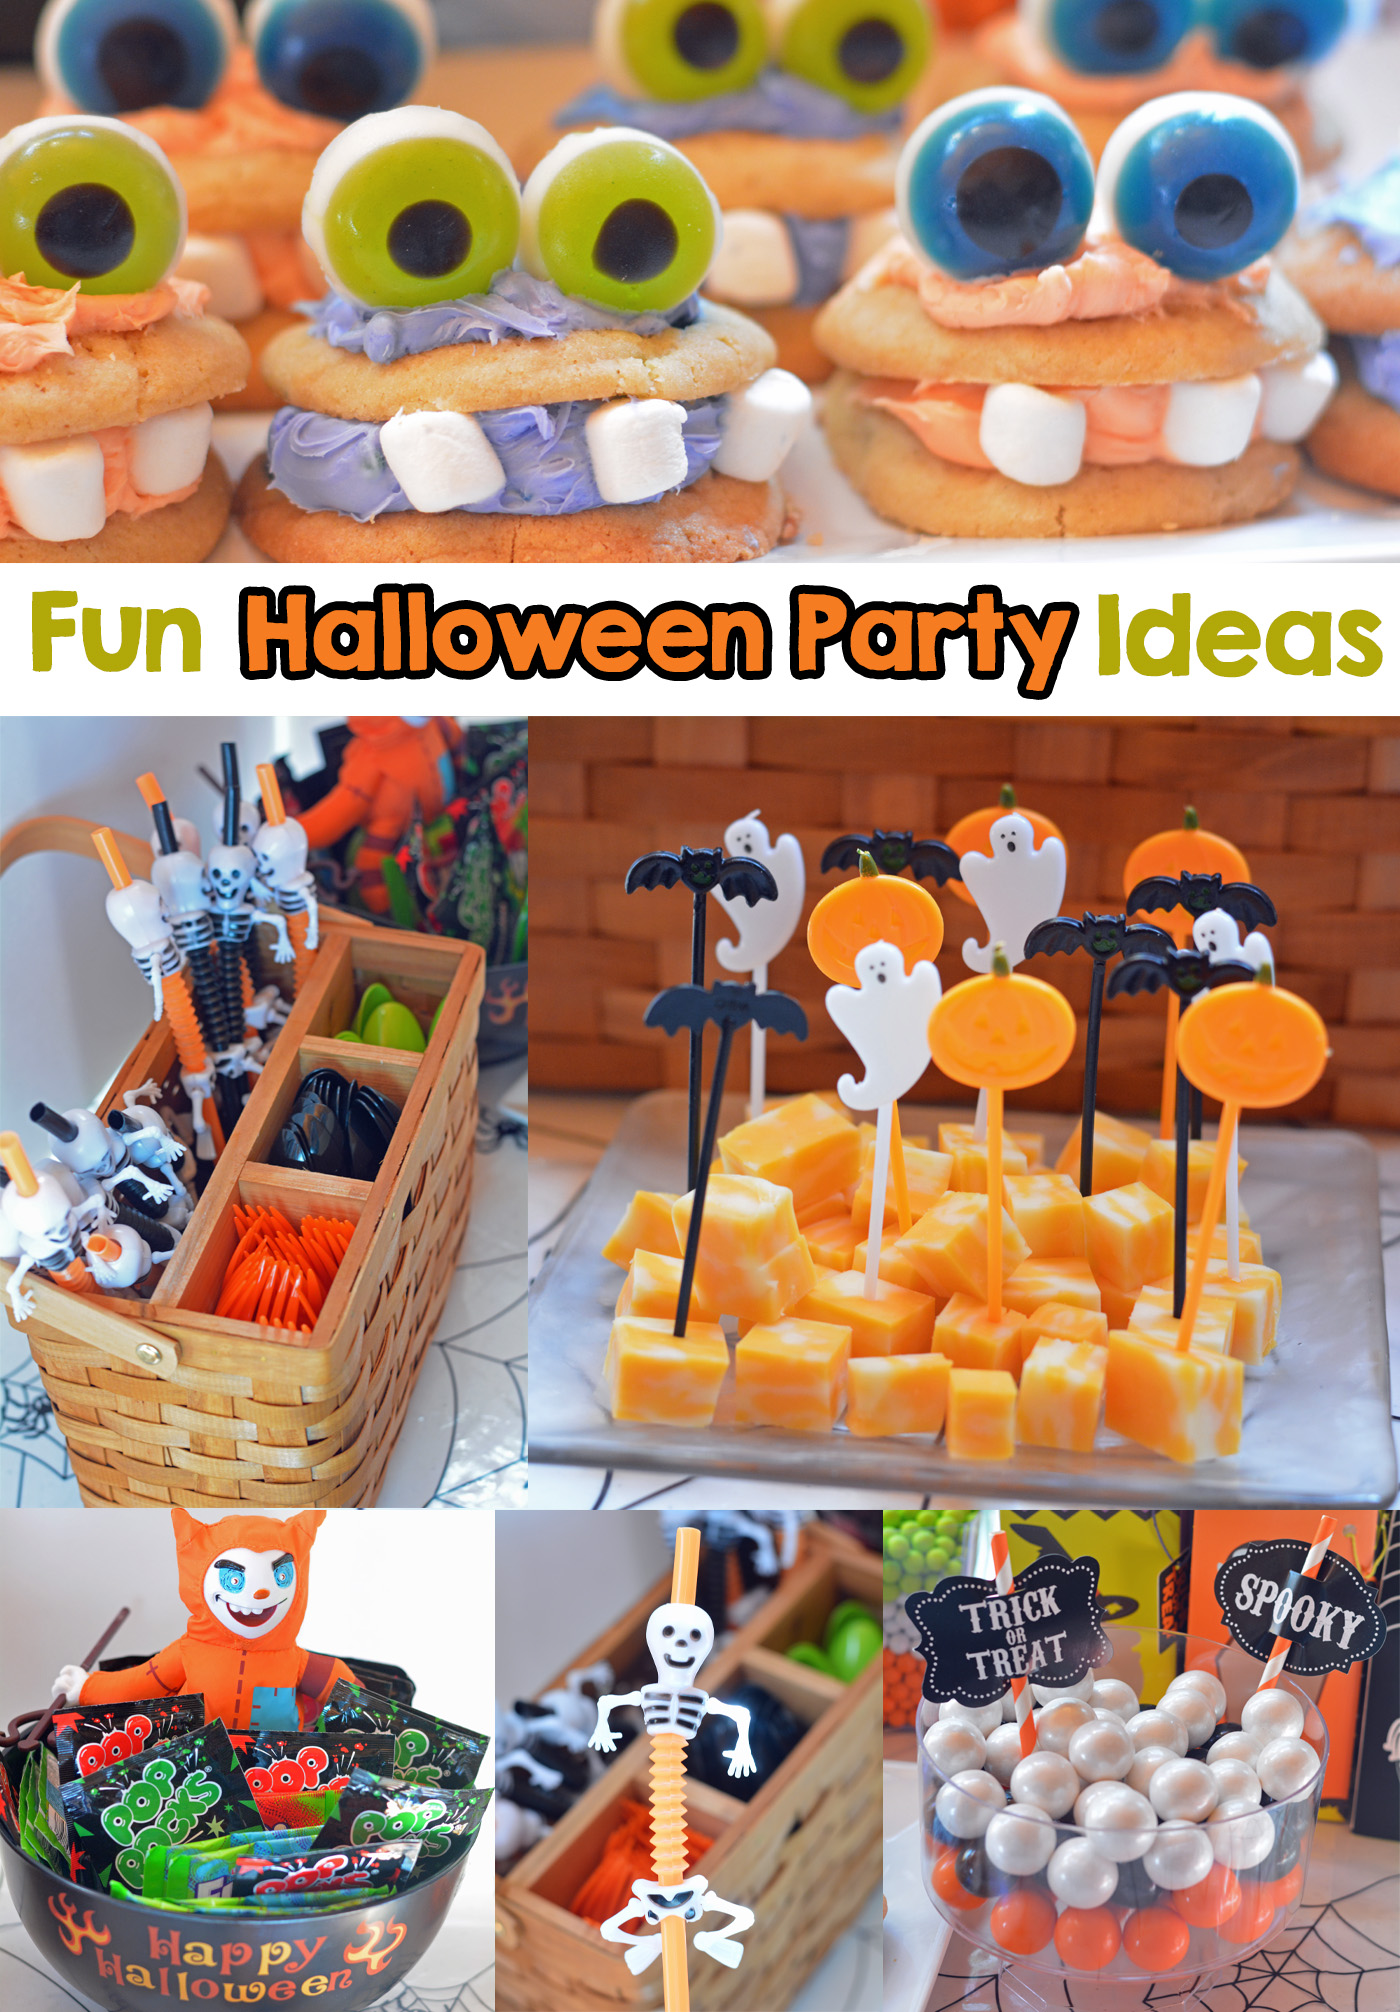 Fun Halloween Party & Costume Ideas